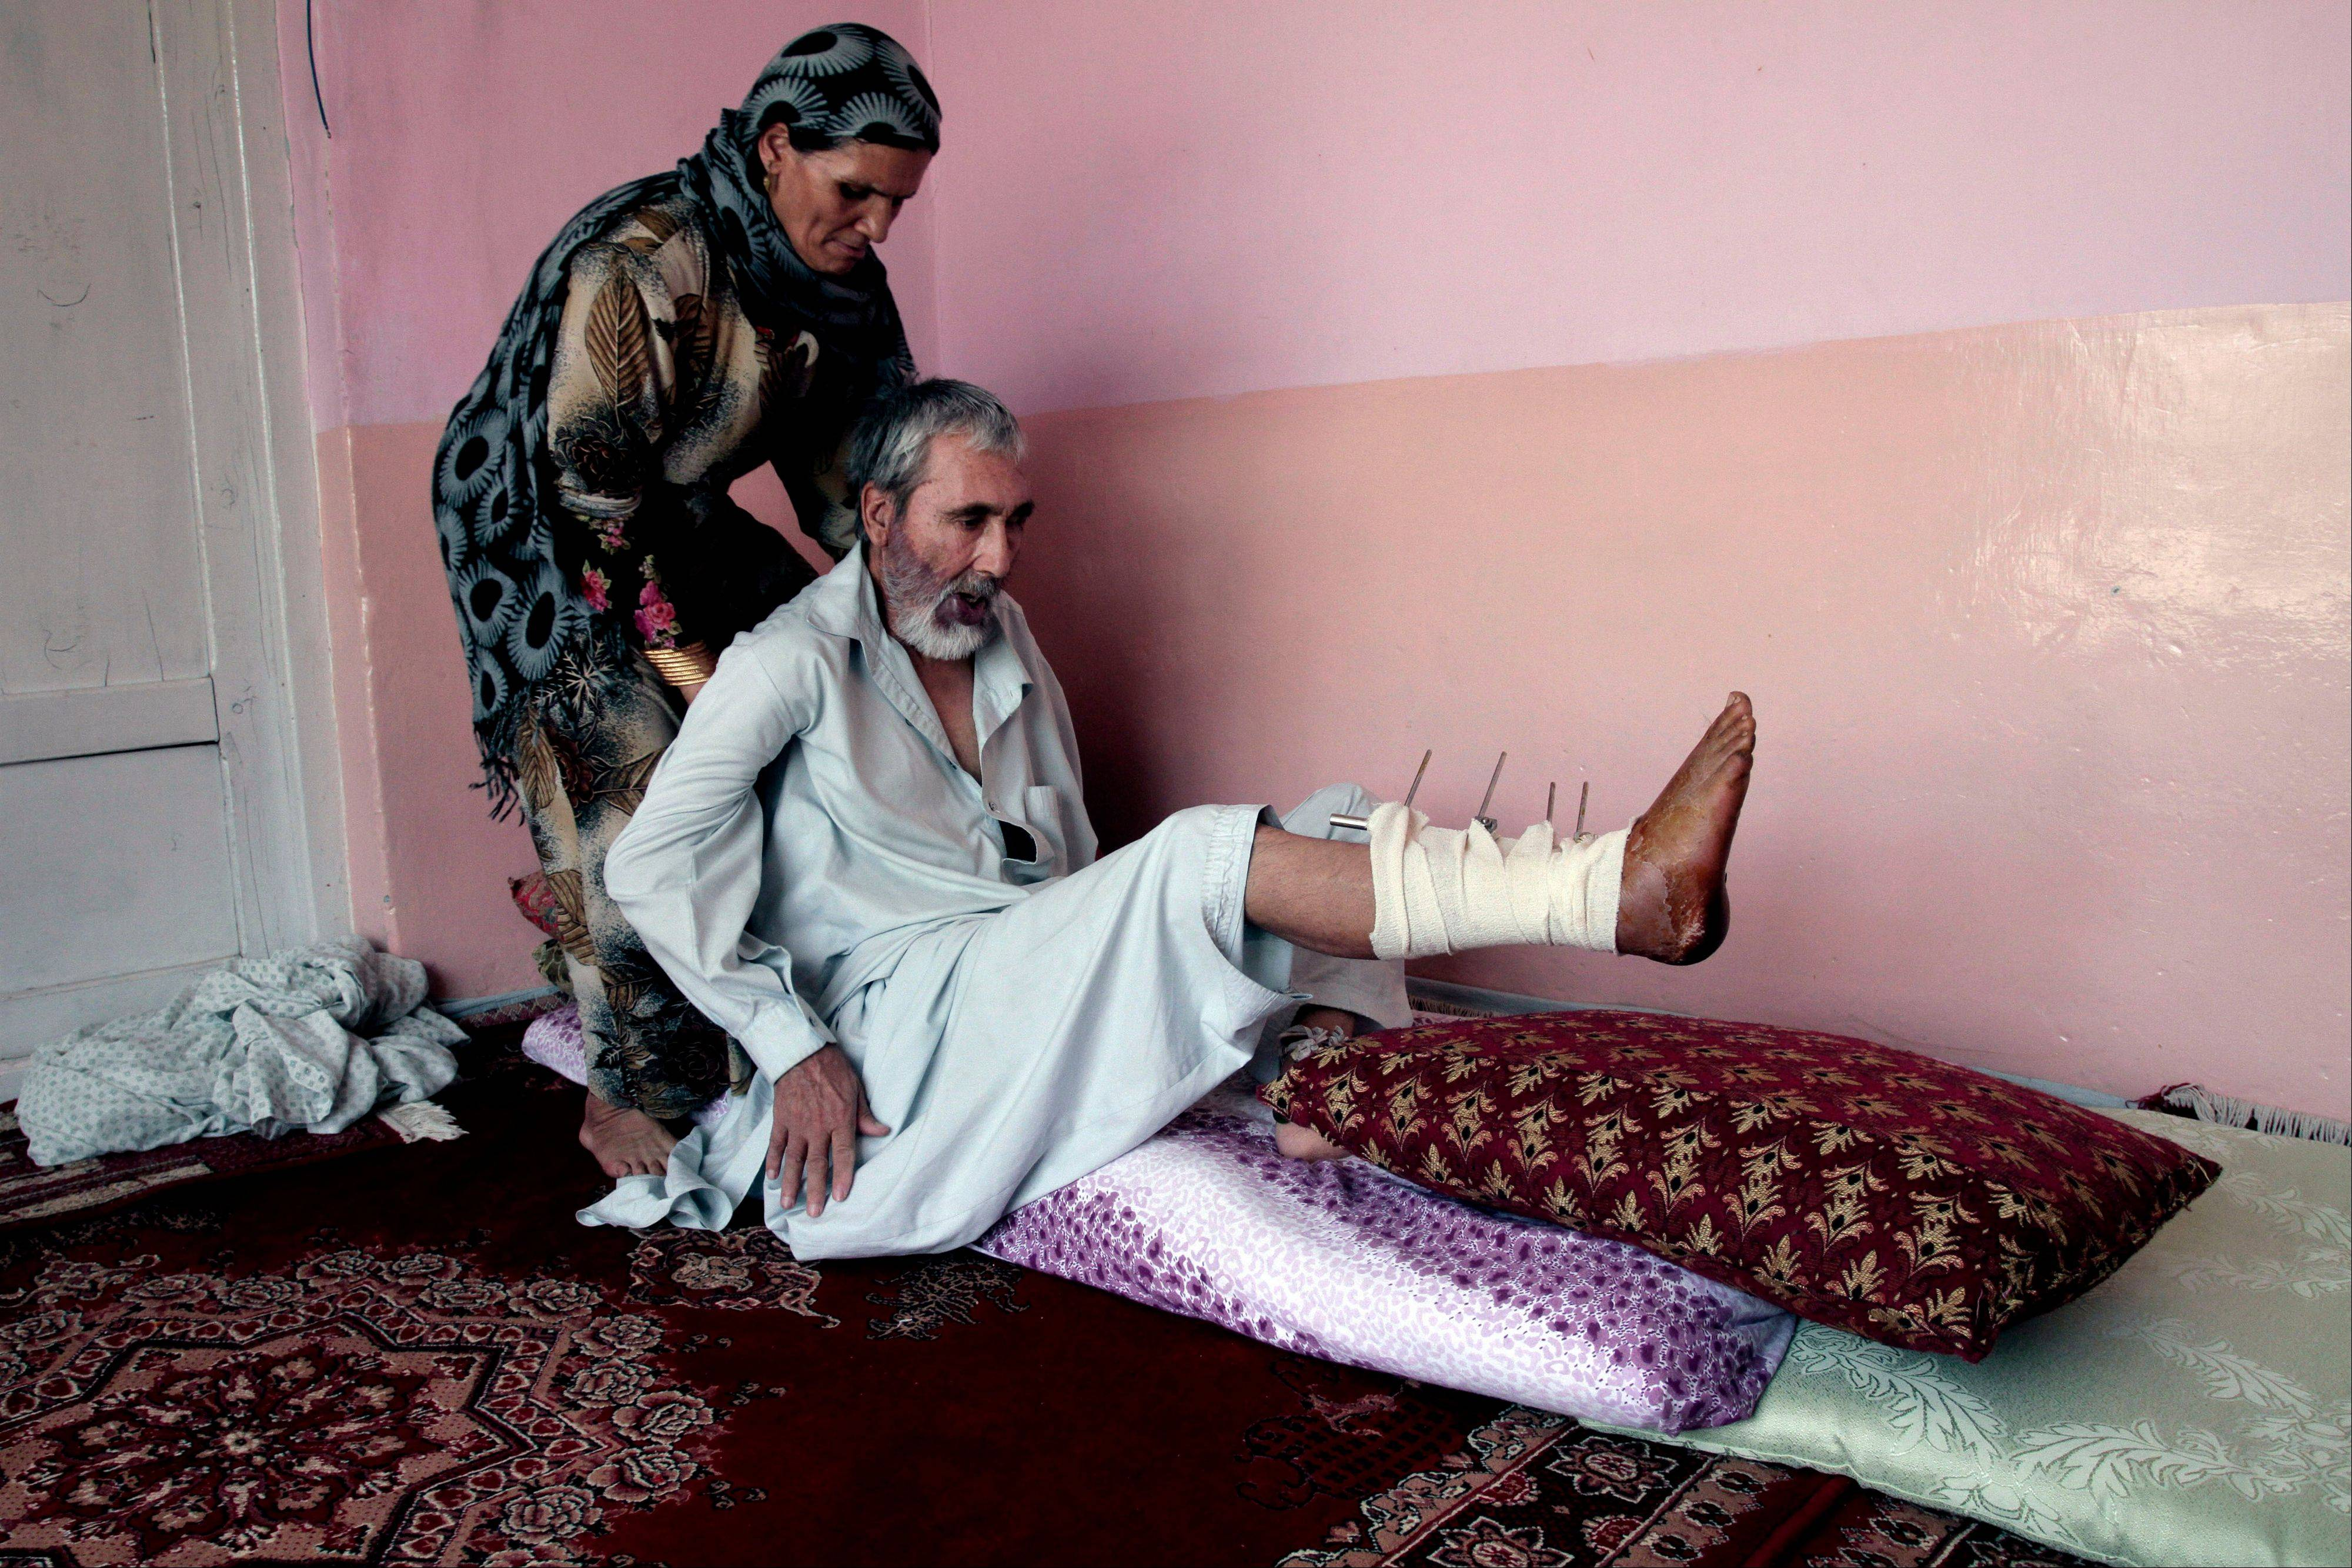 Abdul Jamil, 55, a suicide attack victim who suffers from injuries on his right leg and lost his left eye, is helped by his wife at his home, in Kabul, Afghanistan, Wednesday, July 31, 2013. The U.N. mission in Afghanistan says the number of civilian casualties has spiked in the first half of this year as insurgents use the NATO drawdown to try to retake lost territory.